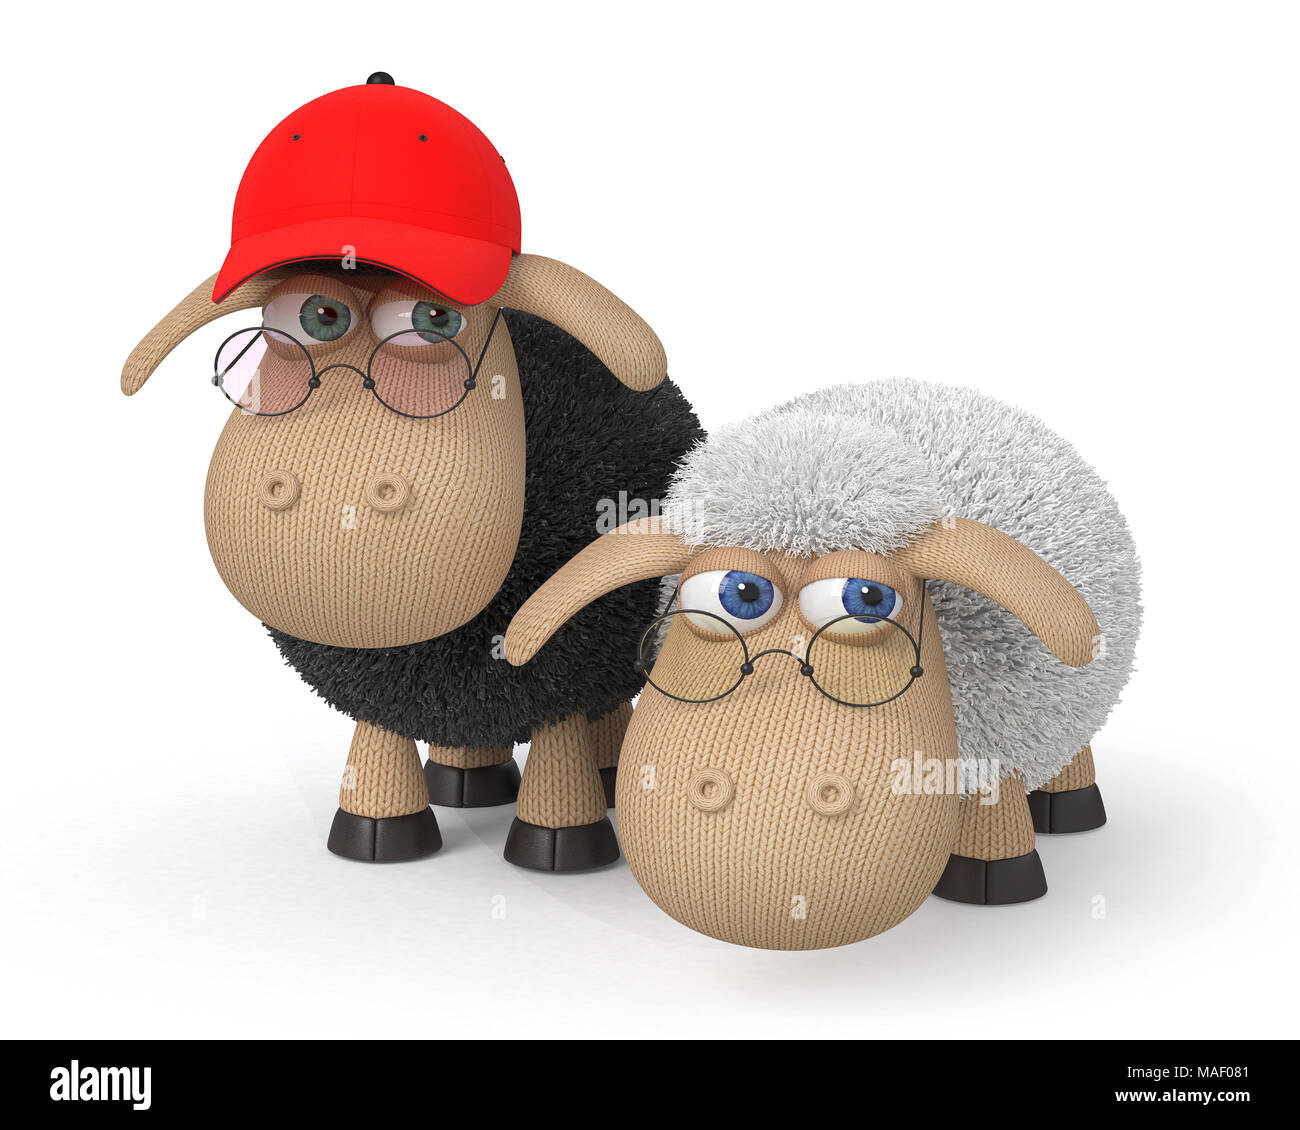 3d illustration funny fluffy sheep do different things/ fluffy farm animals amuse themselves Stock Photo